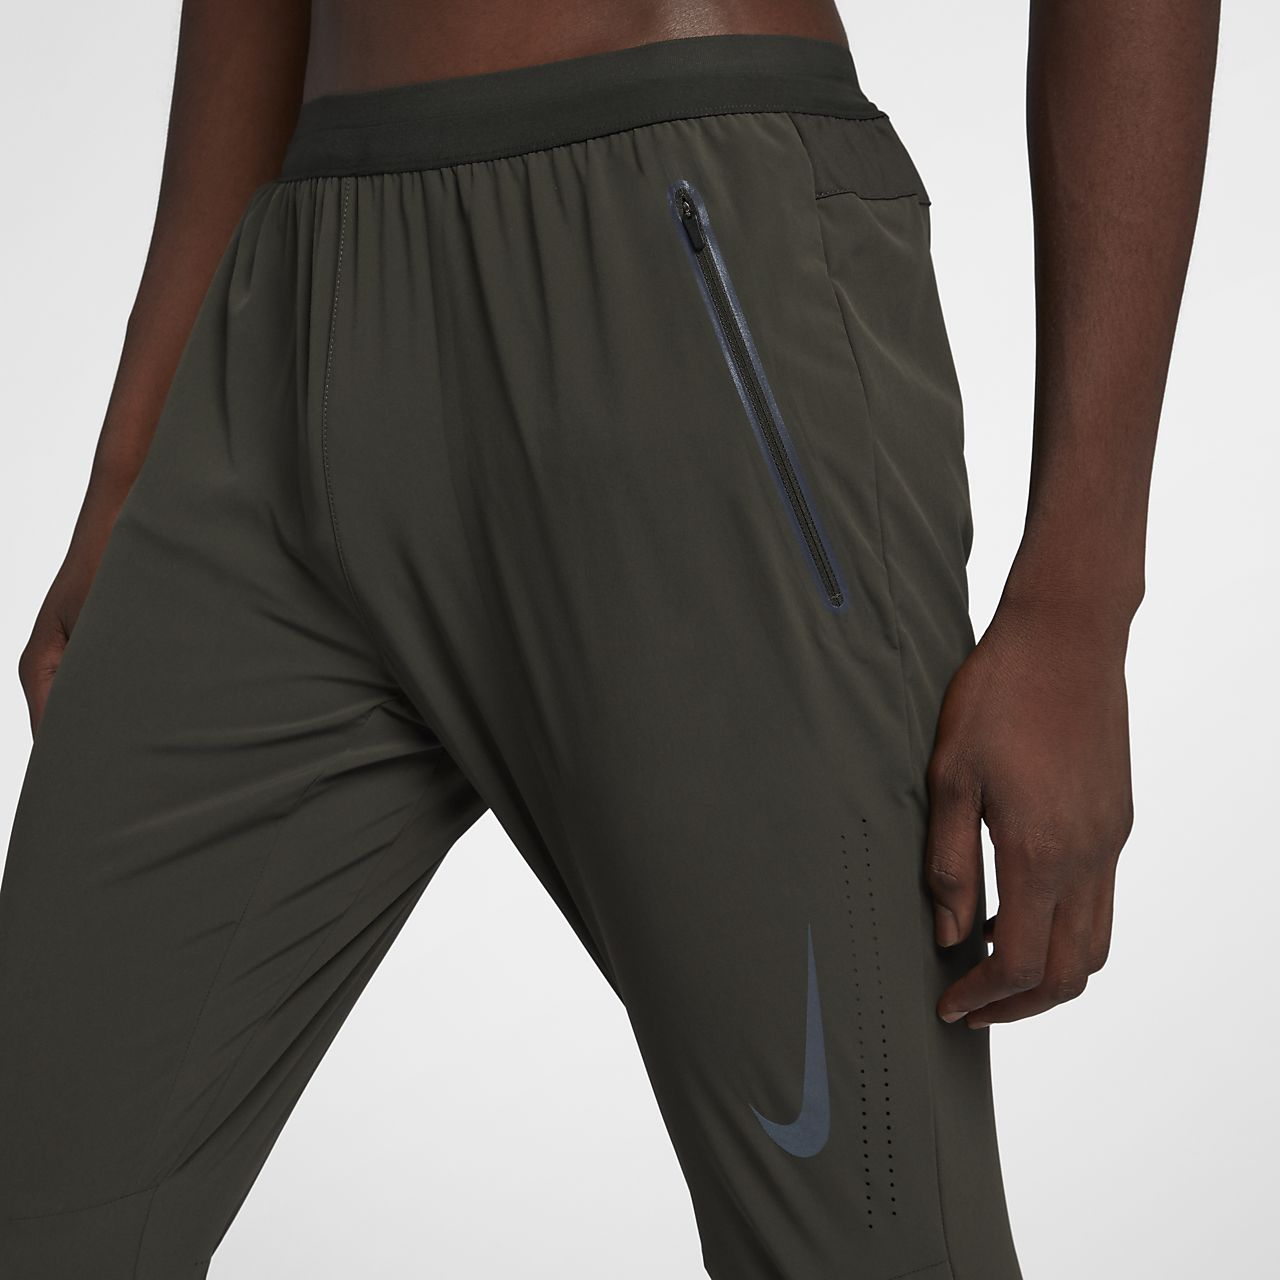 72f6facf06a2 Low Resolution Nike Swift Men s Running Trousers Nike Swift Men s Running  Trousers